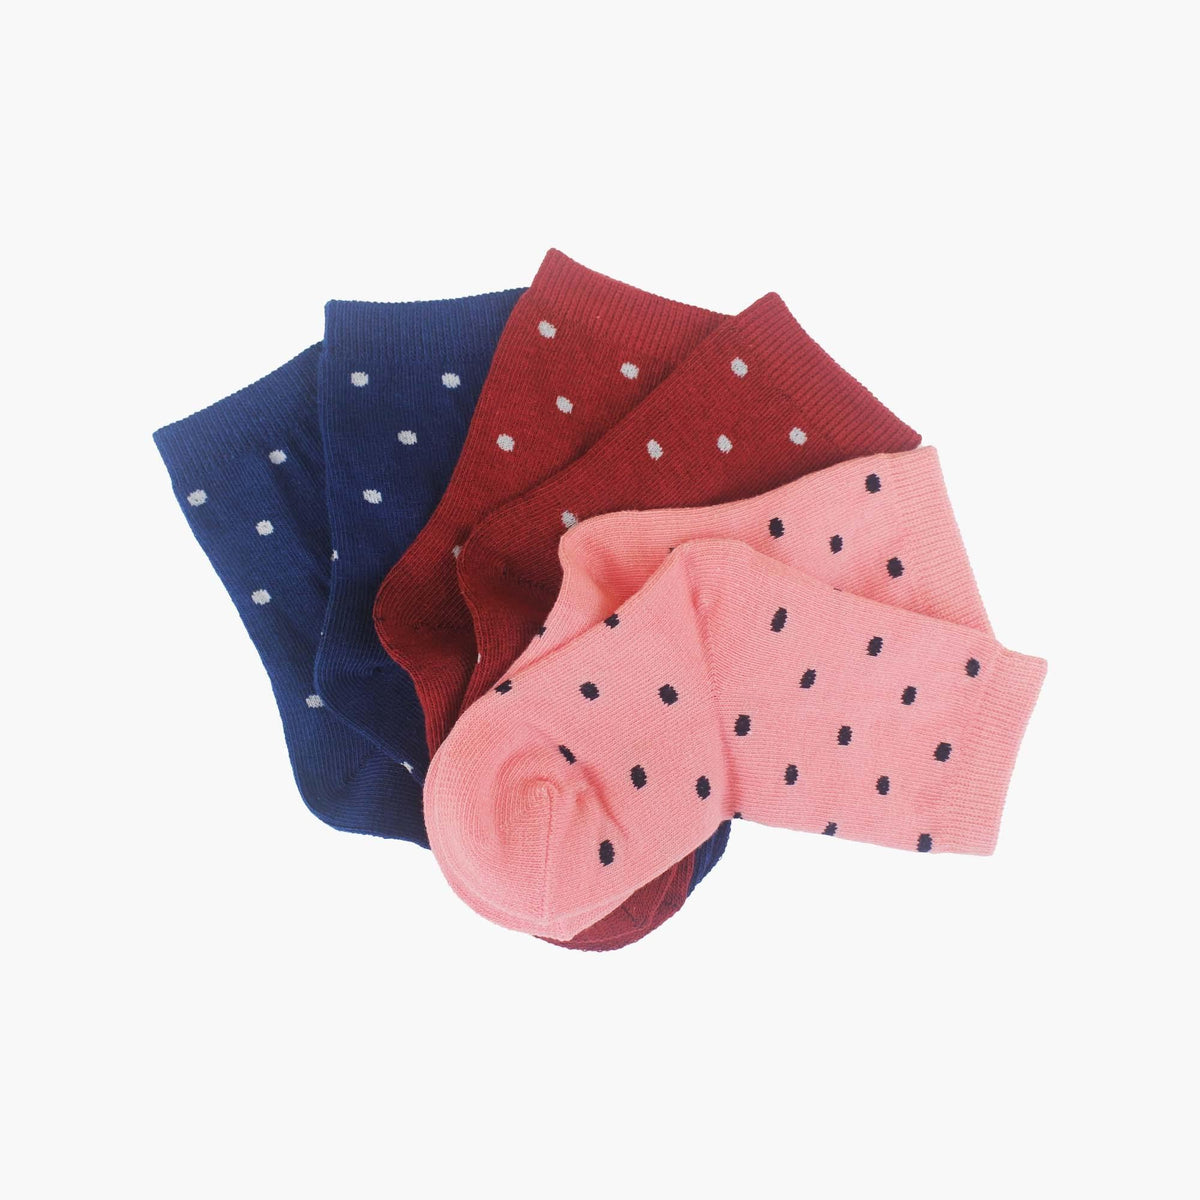 3 Pack Organic Cotton Pink. Navy and Red Polka Dot Baby Swanky Socks - SwankySocks